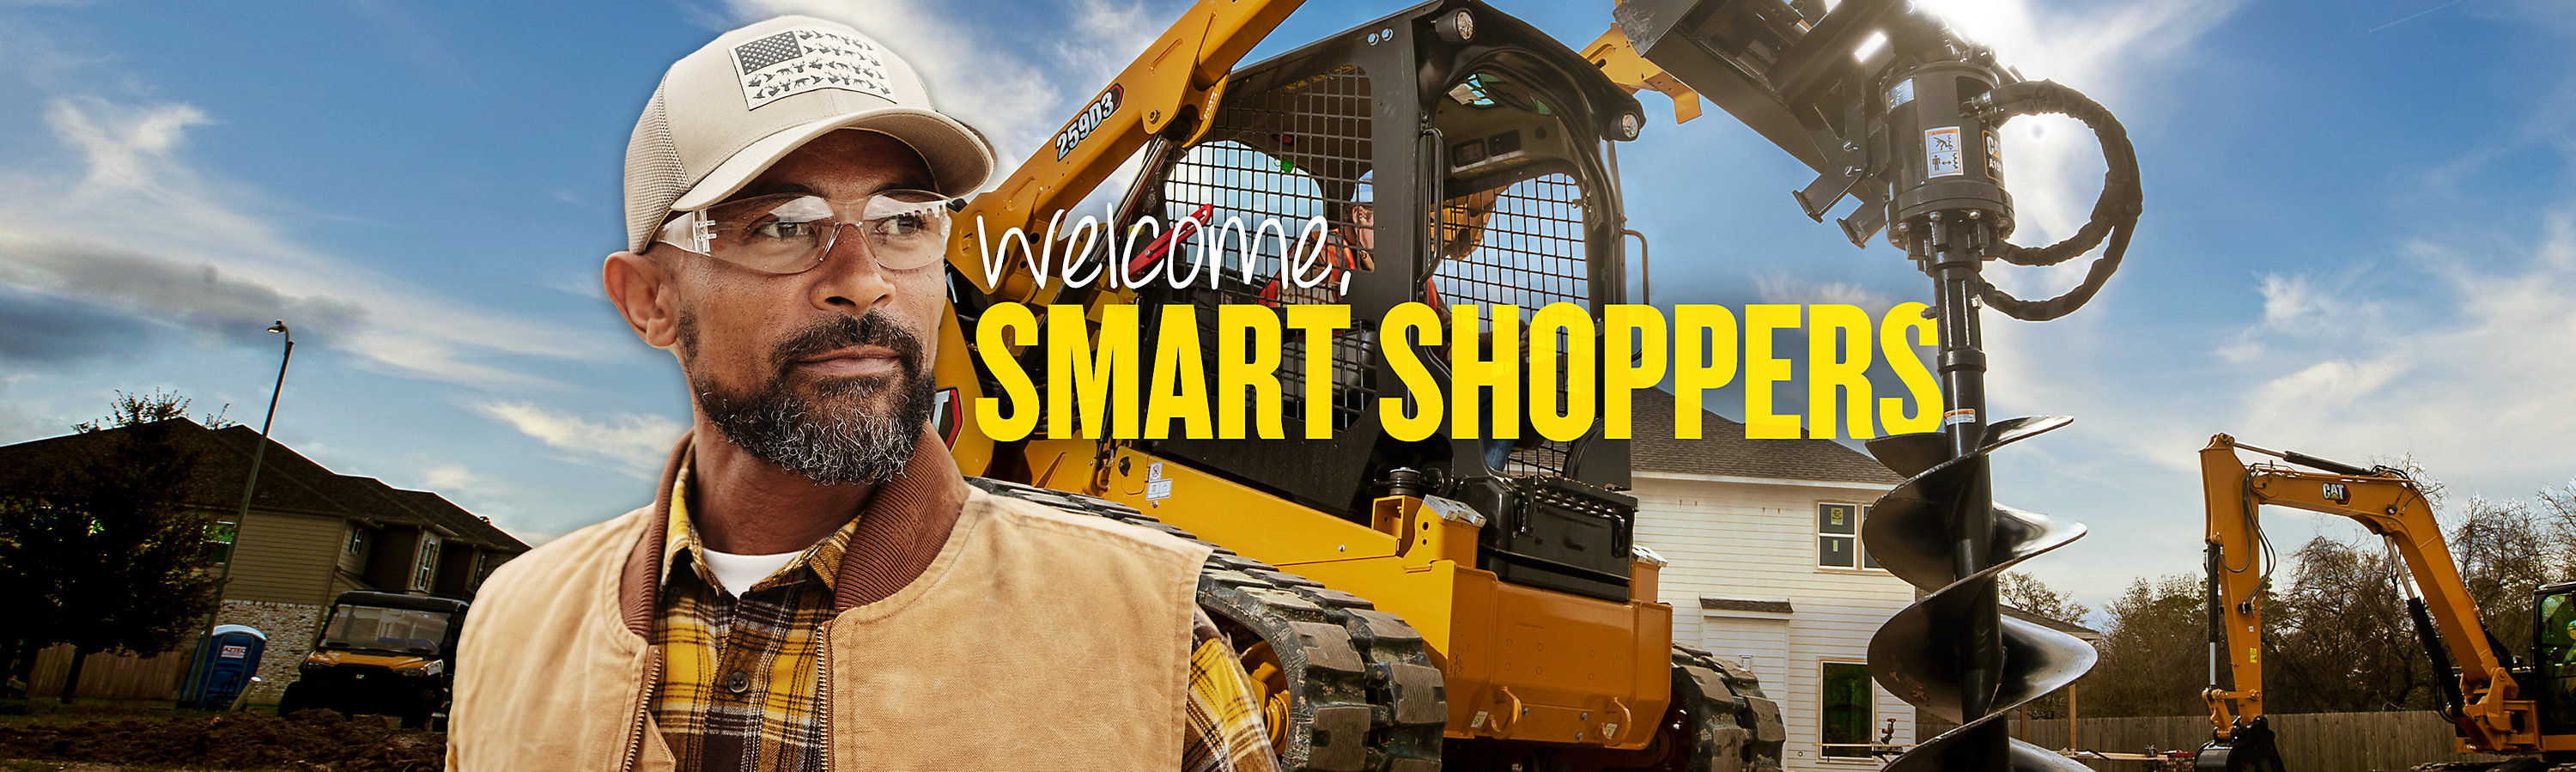 Explore our current offers on Cat construction equipment.